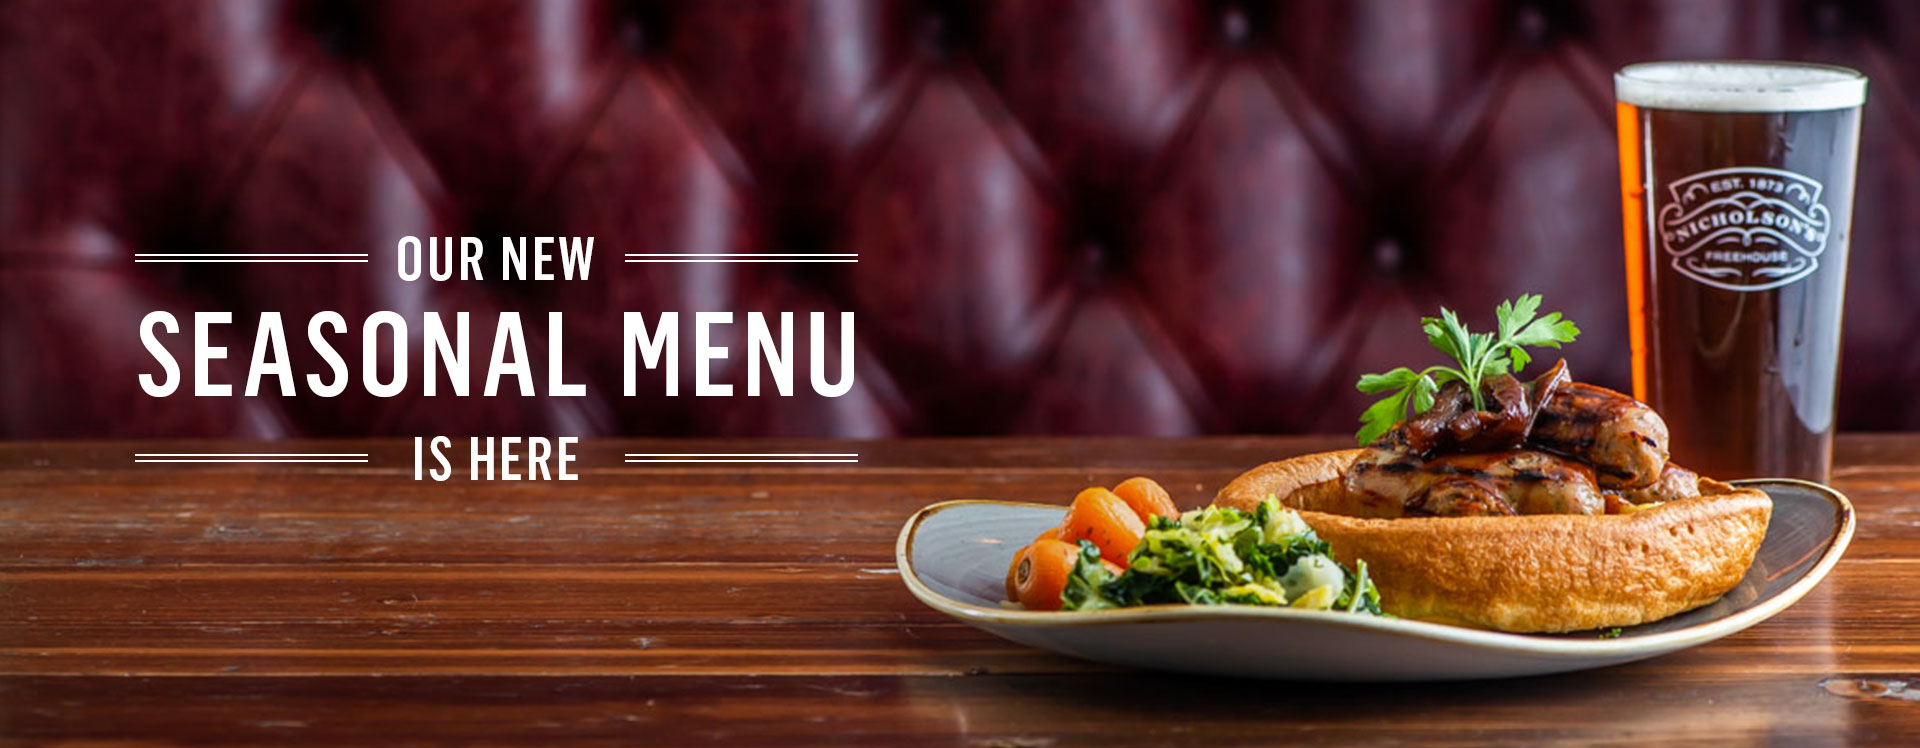 New Menu at The White Swan